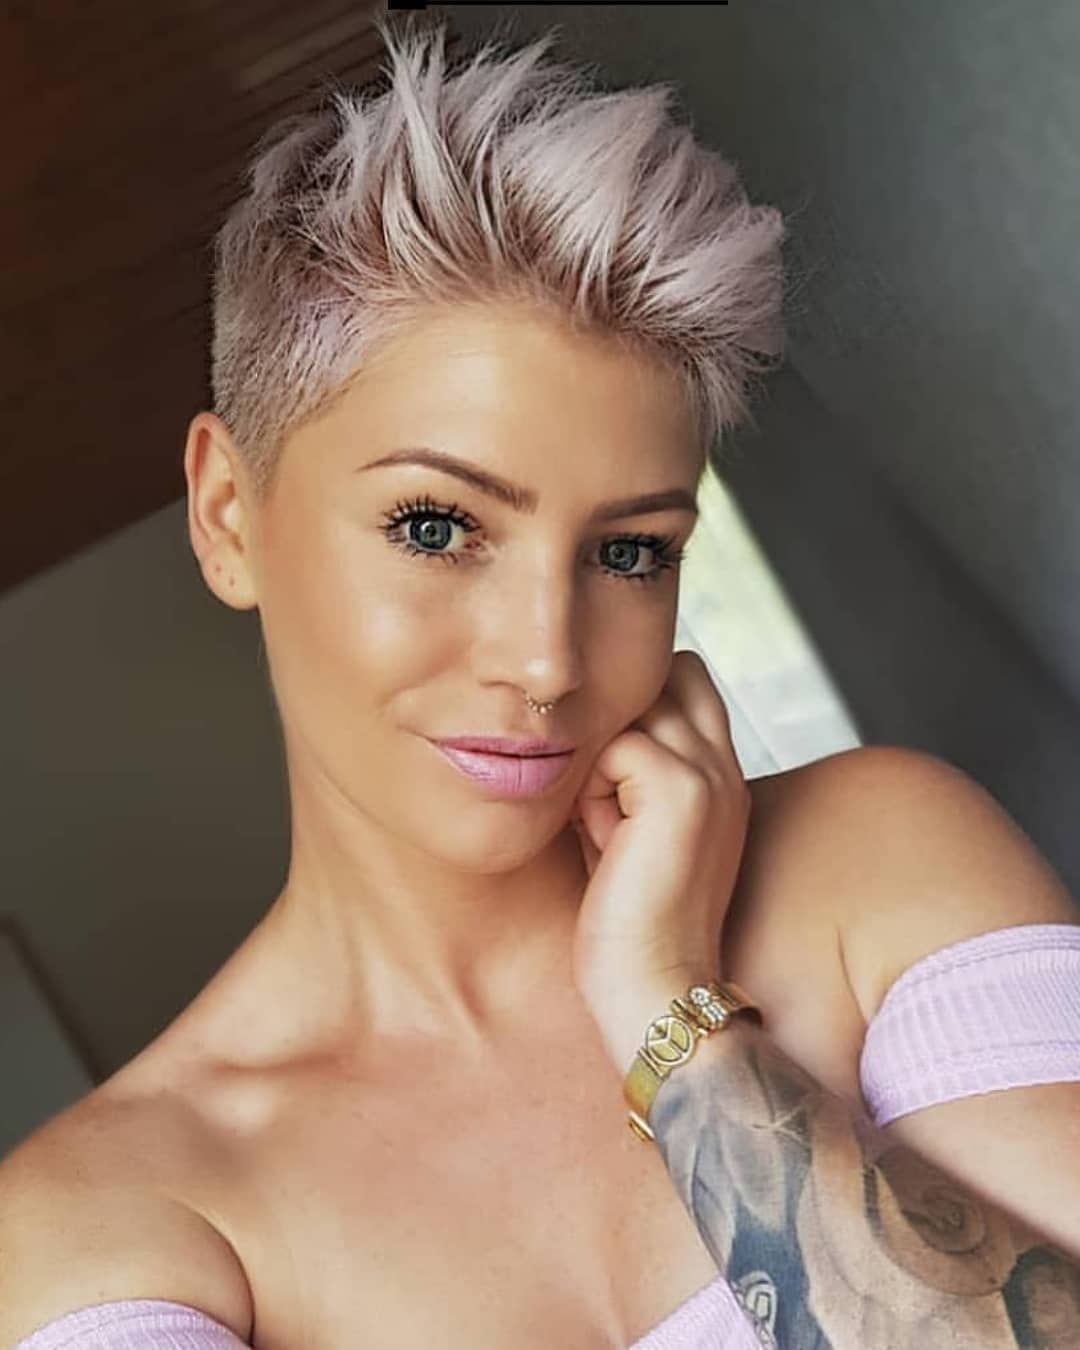 Official Page Short Hair Ideas On Instagram Credits To Anna Maria Theresia More Hairstyles Lin Short Pixie Haircuts Trending Haircuts Thick Hair Styles